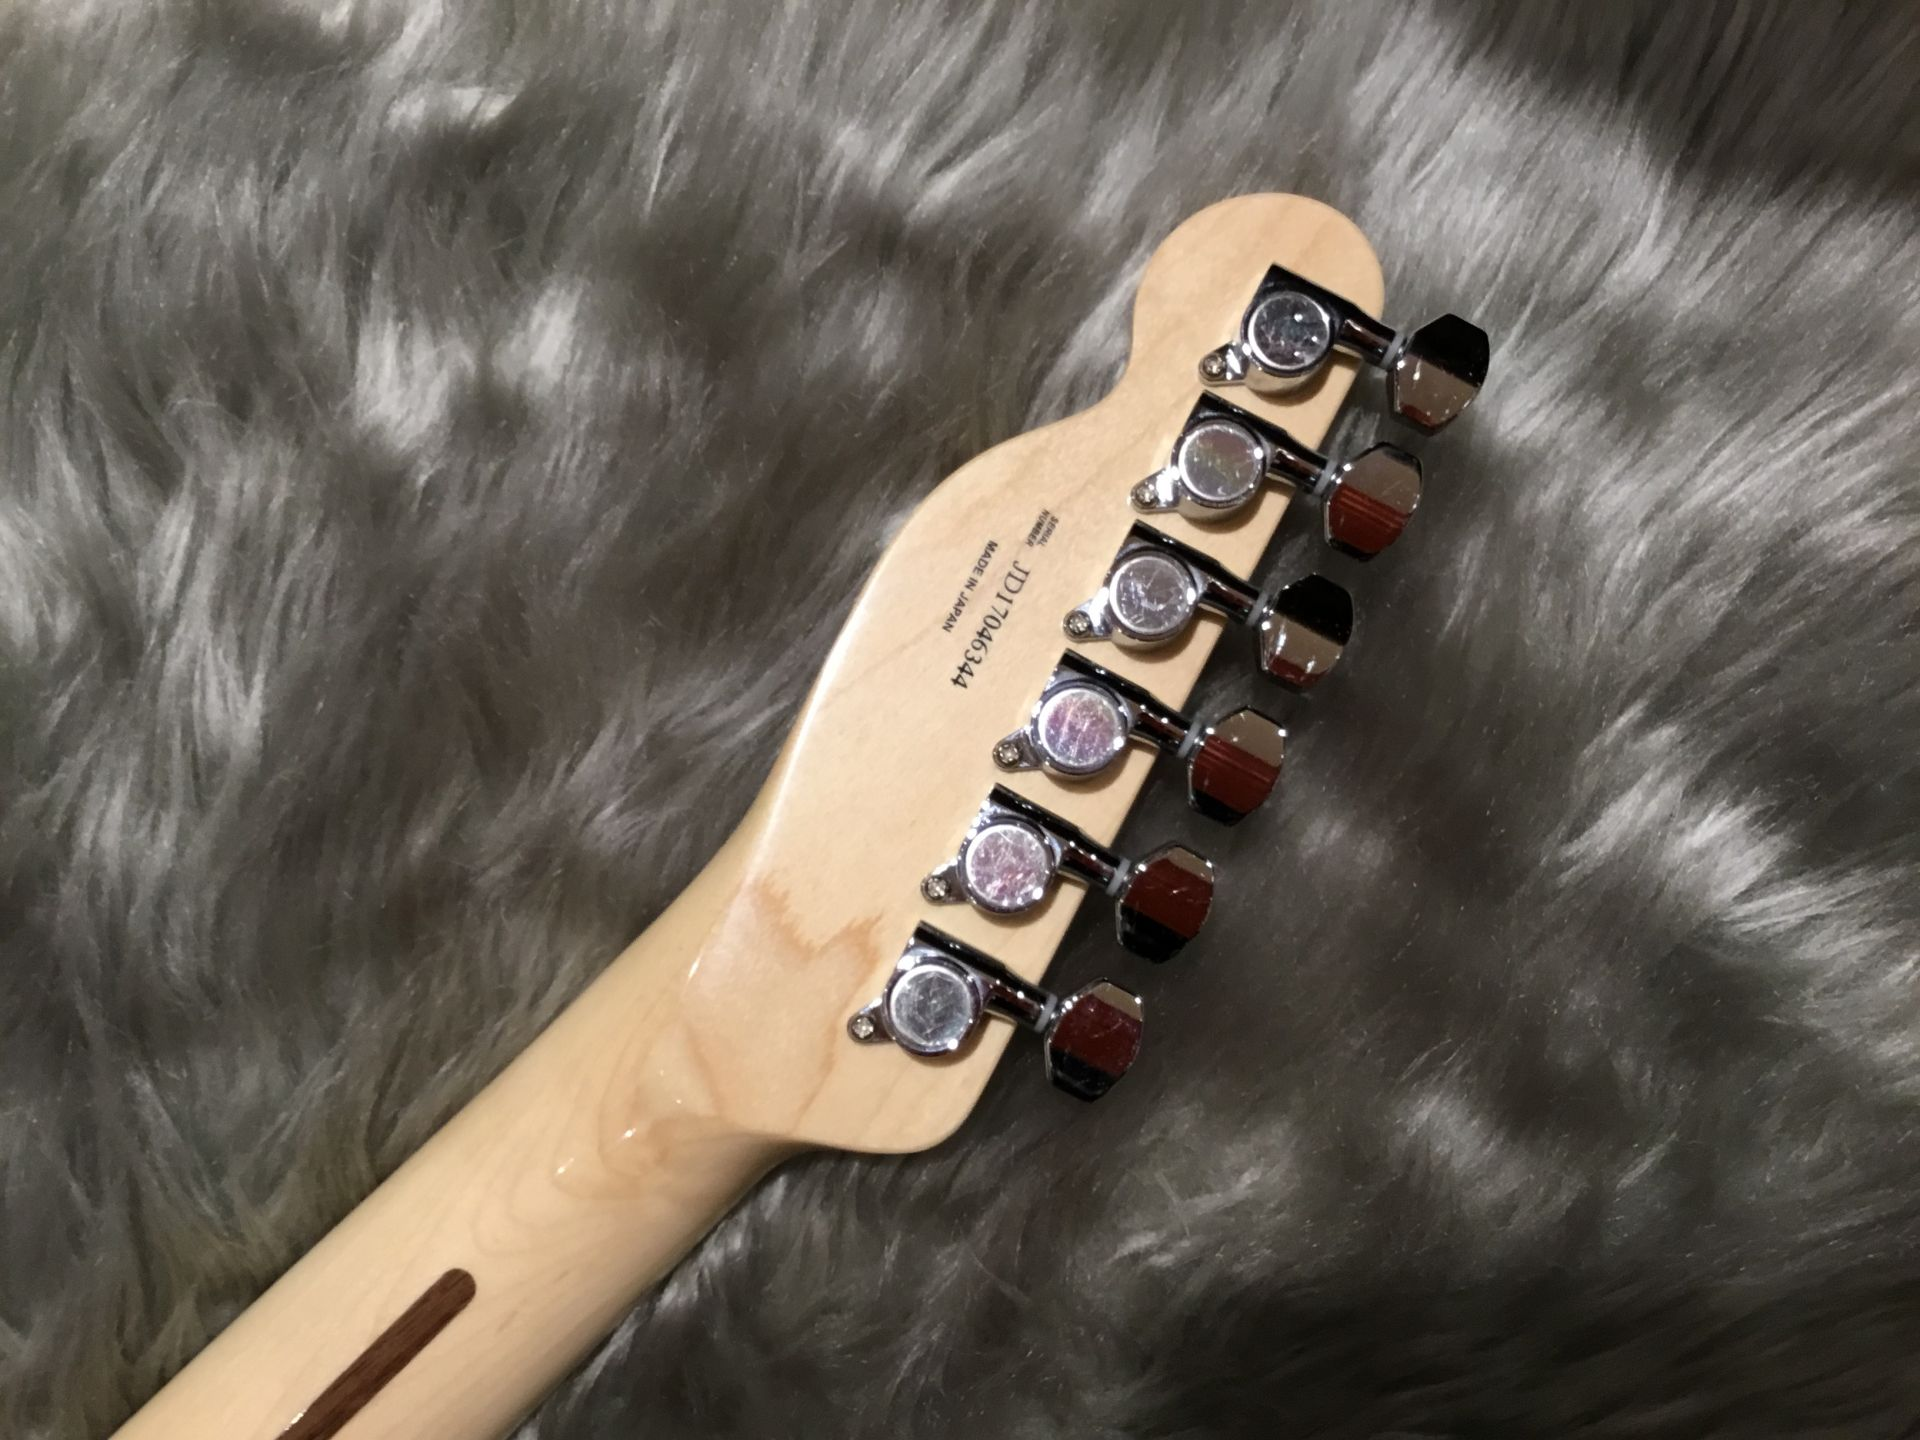 MADE IN JAPAN TRADITIONAL 70S TELECASTER® CUSTOMのヘッド裏-アップ画像